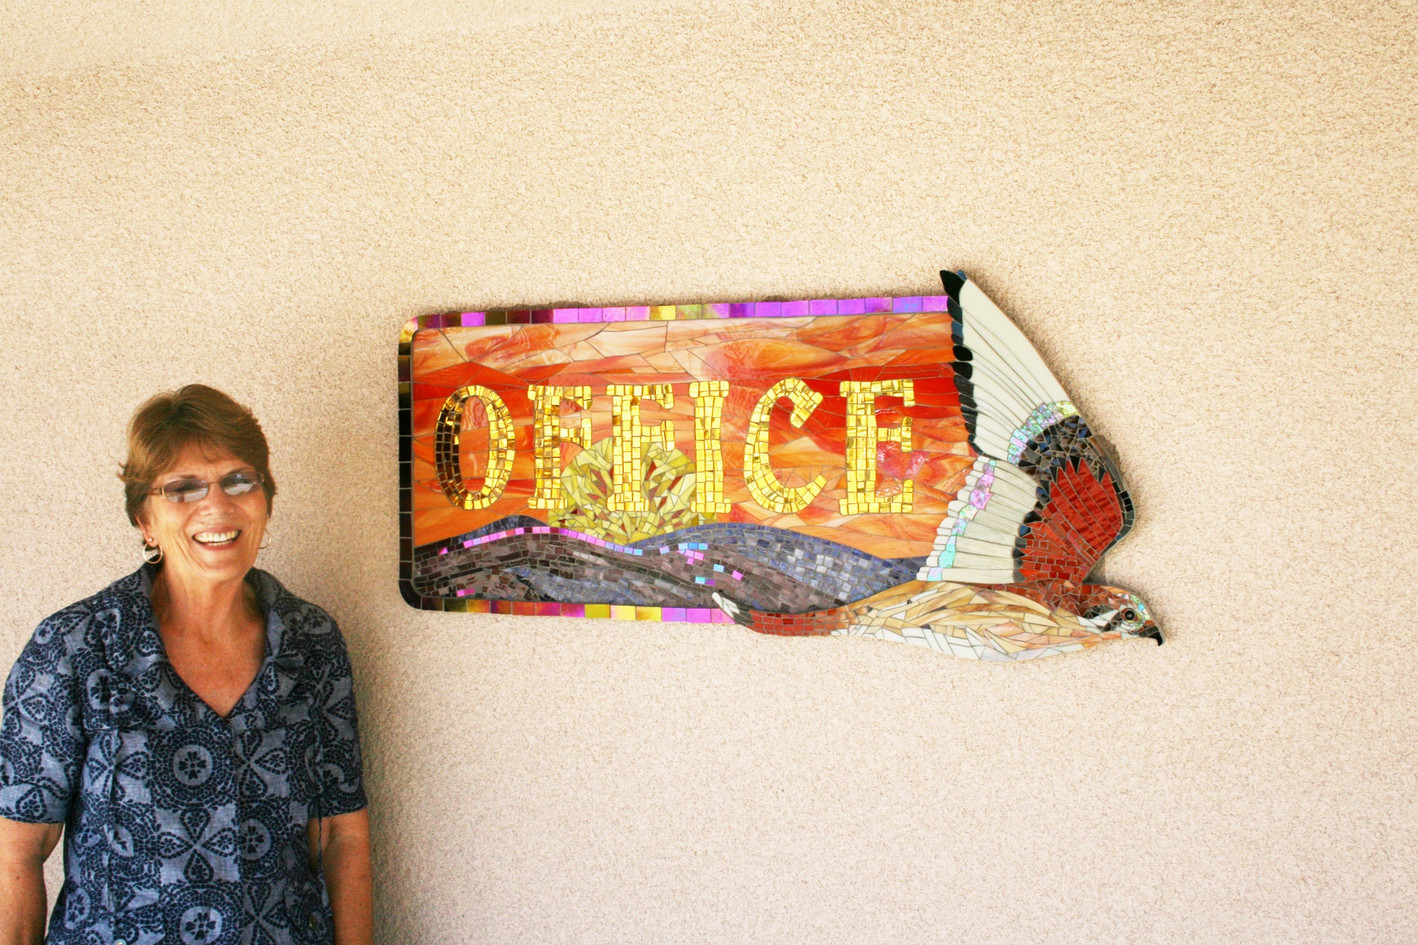 Mosaic falcon office sign at Seeley Elementary School